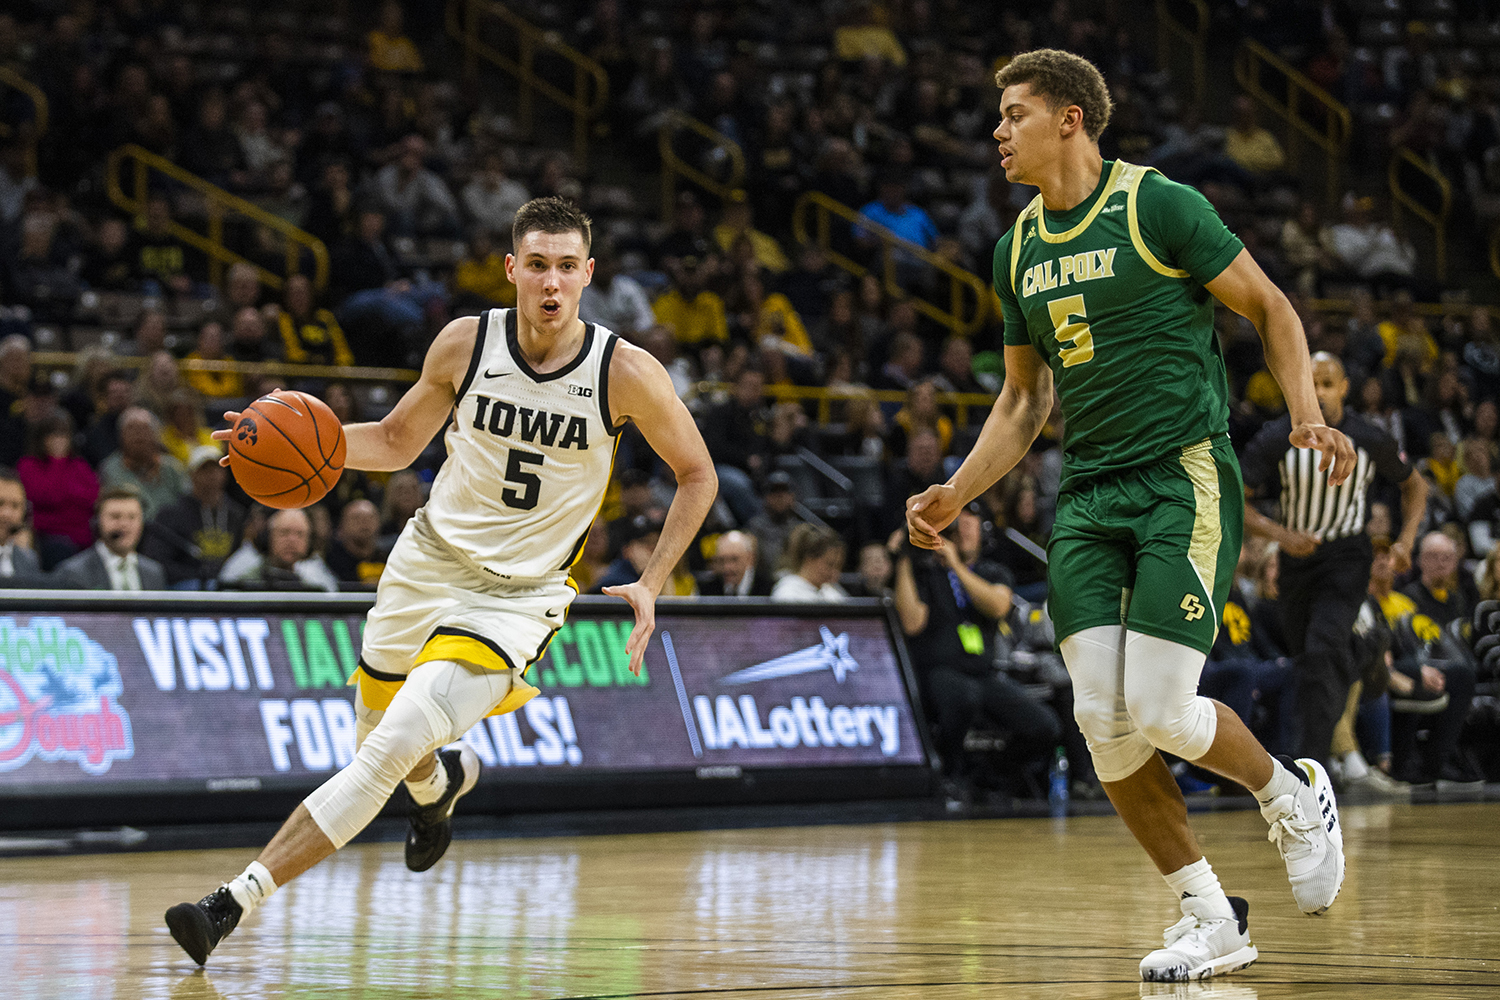 Iowa guard CJ Fredrick drives the ball during the men's basketball game against Cal Poly at Carver-Hawkeye Arena on Sunday, November 24, 2019. The Hawkeyes defeated the Mustangs 85-59.